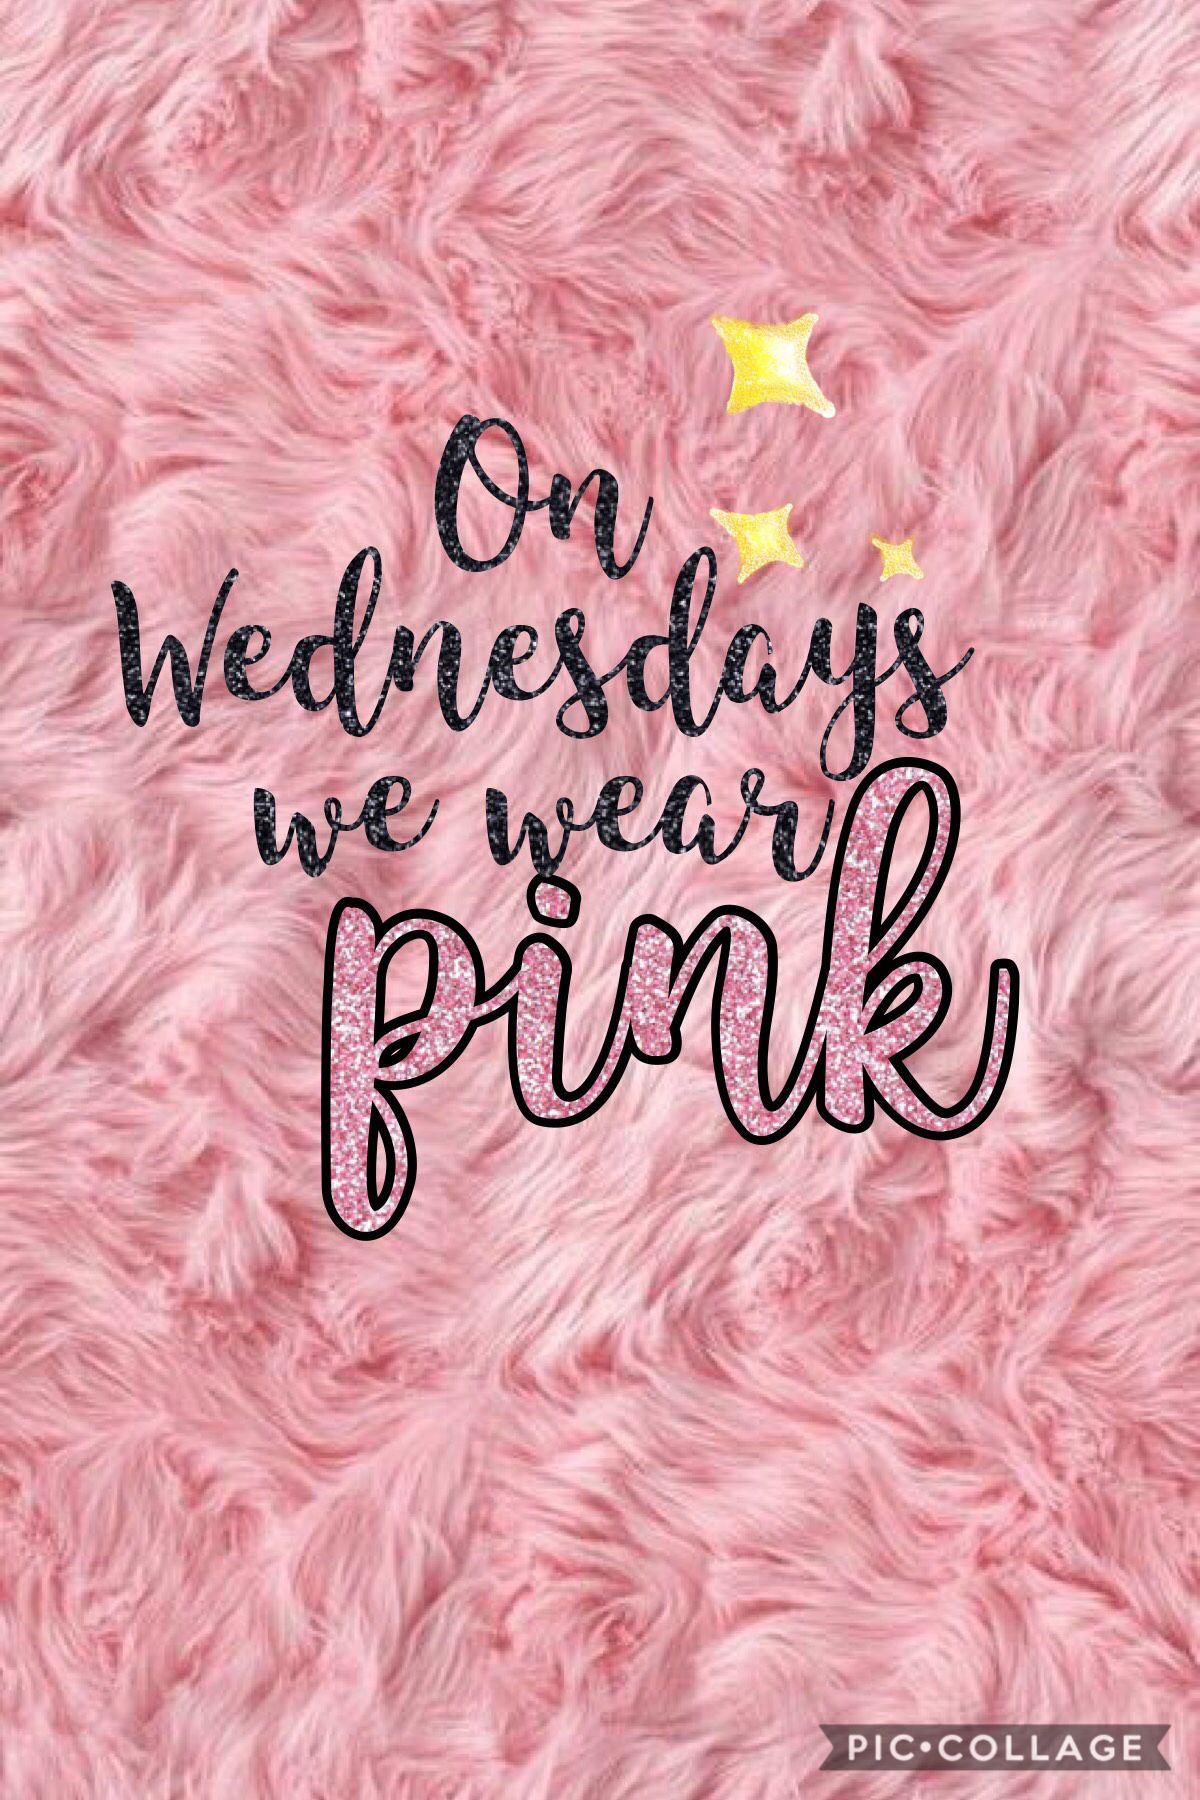 on wednesdays we wear pink mean girls wallpaper | wallpapers